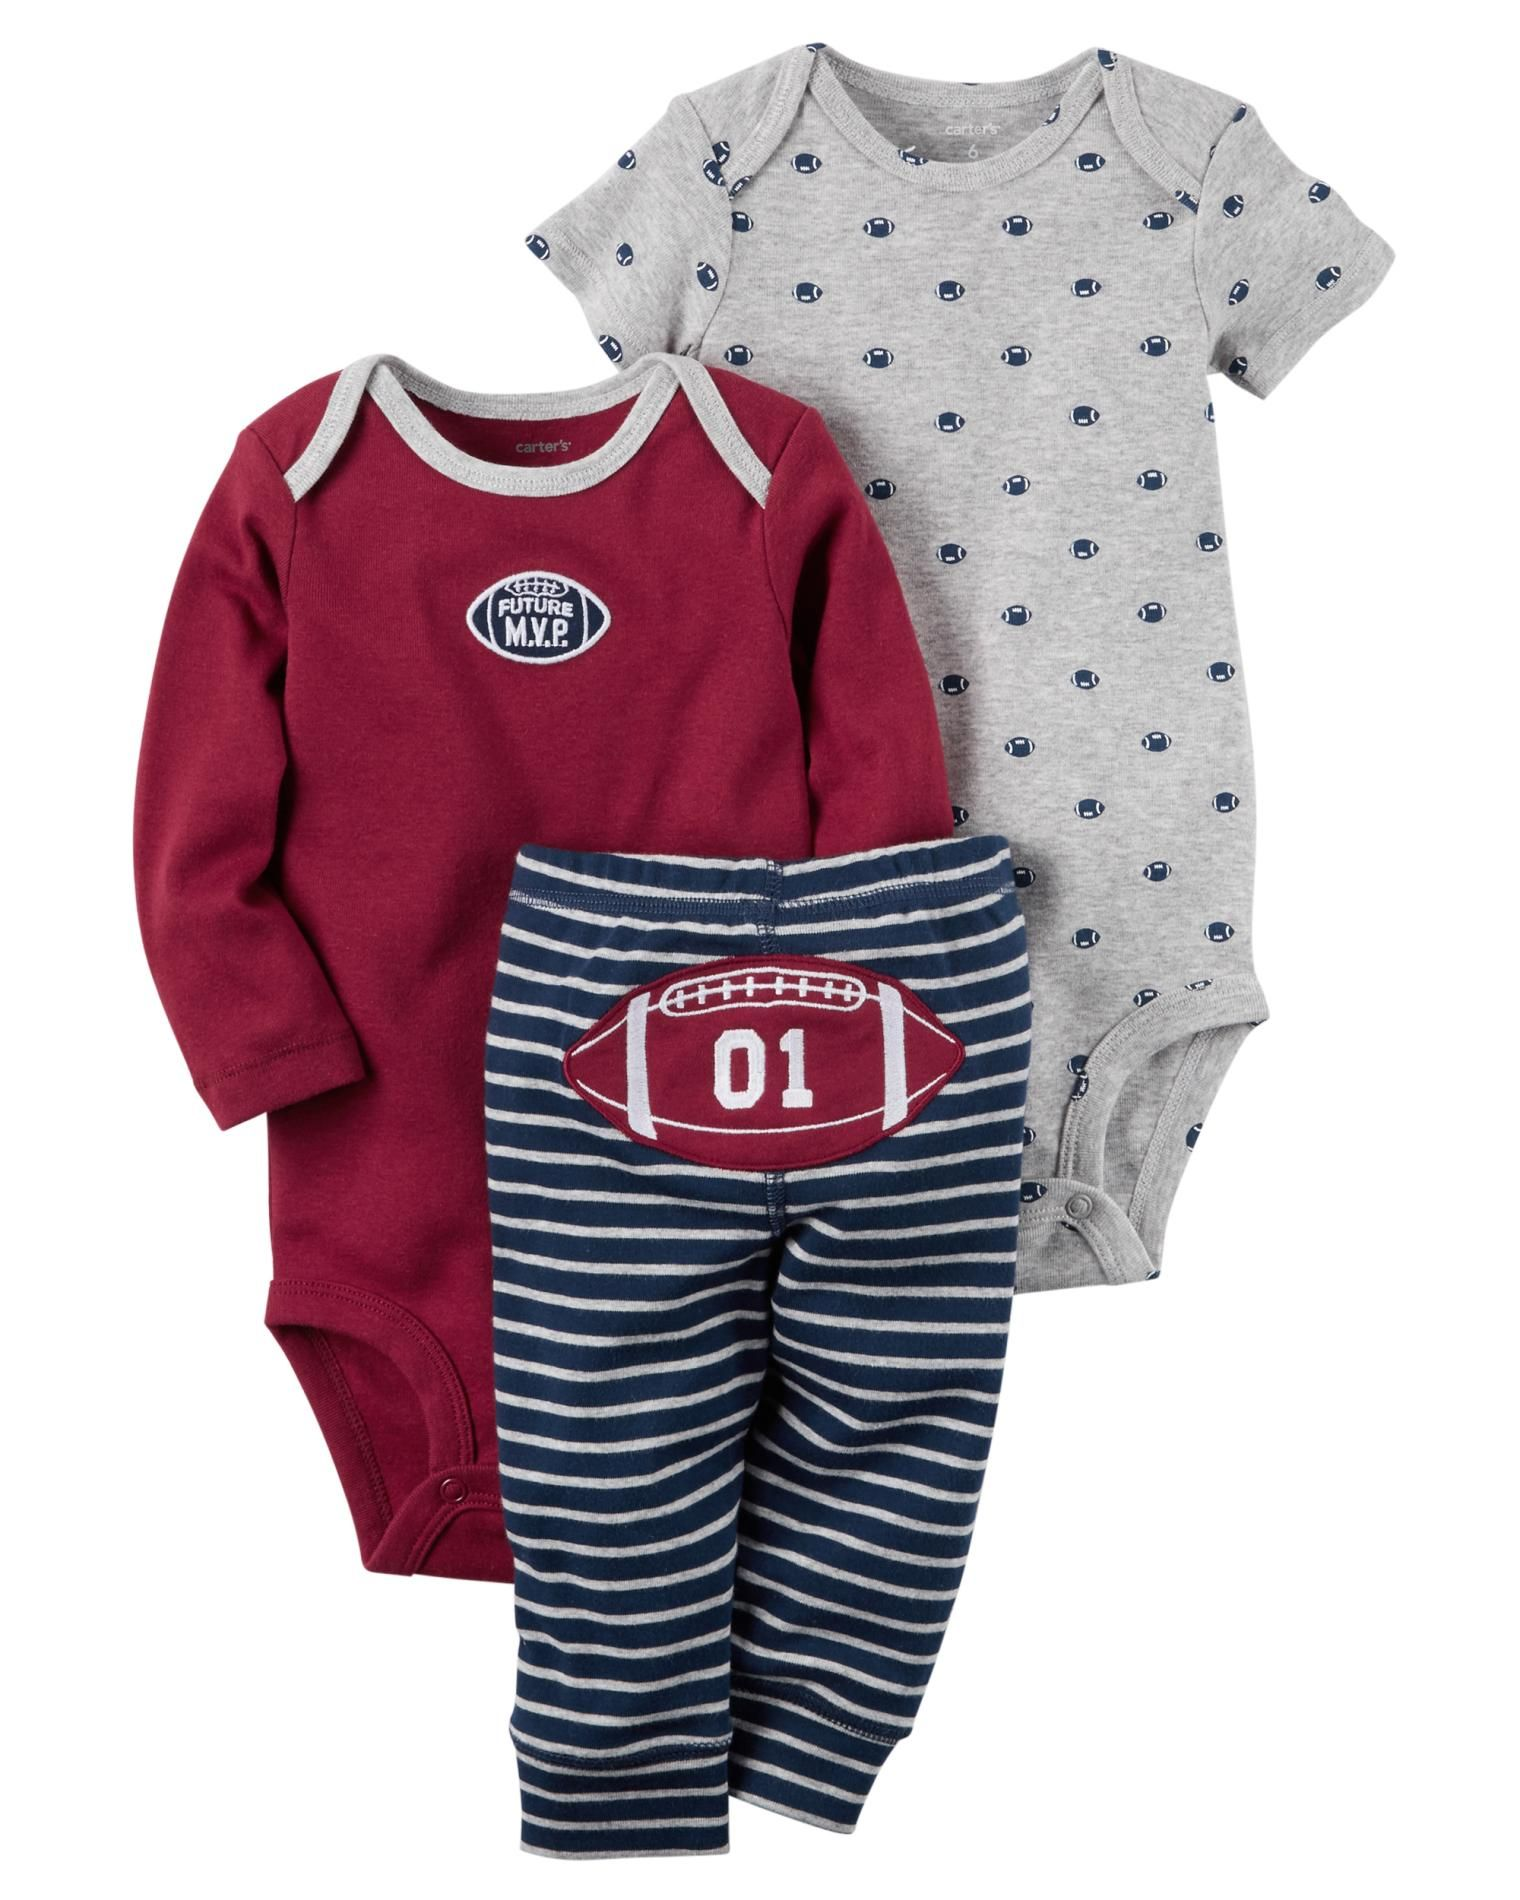 c6c35032d99d Sears - Online | Grandbaby | Carters baby clothes, Baby boy outfits ...